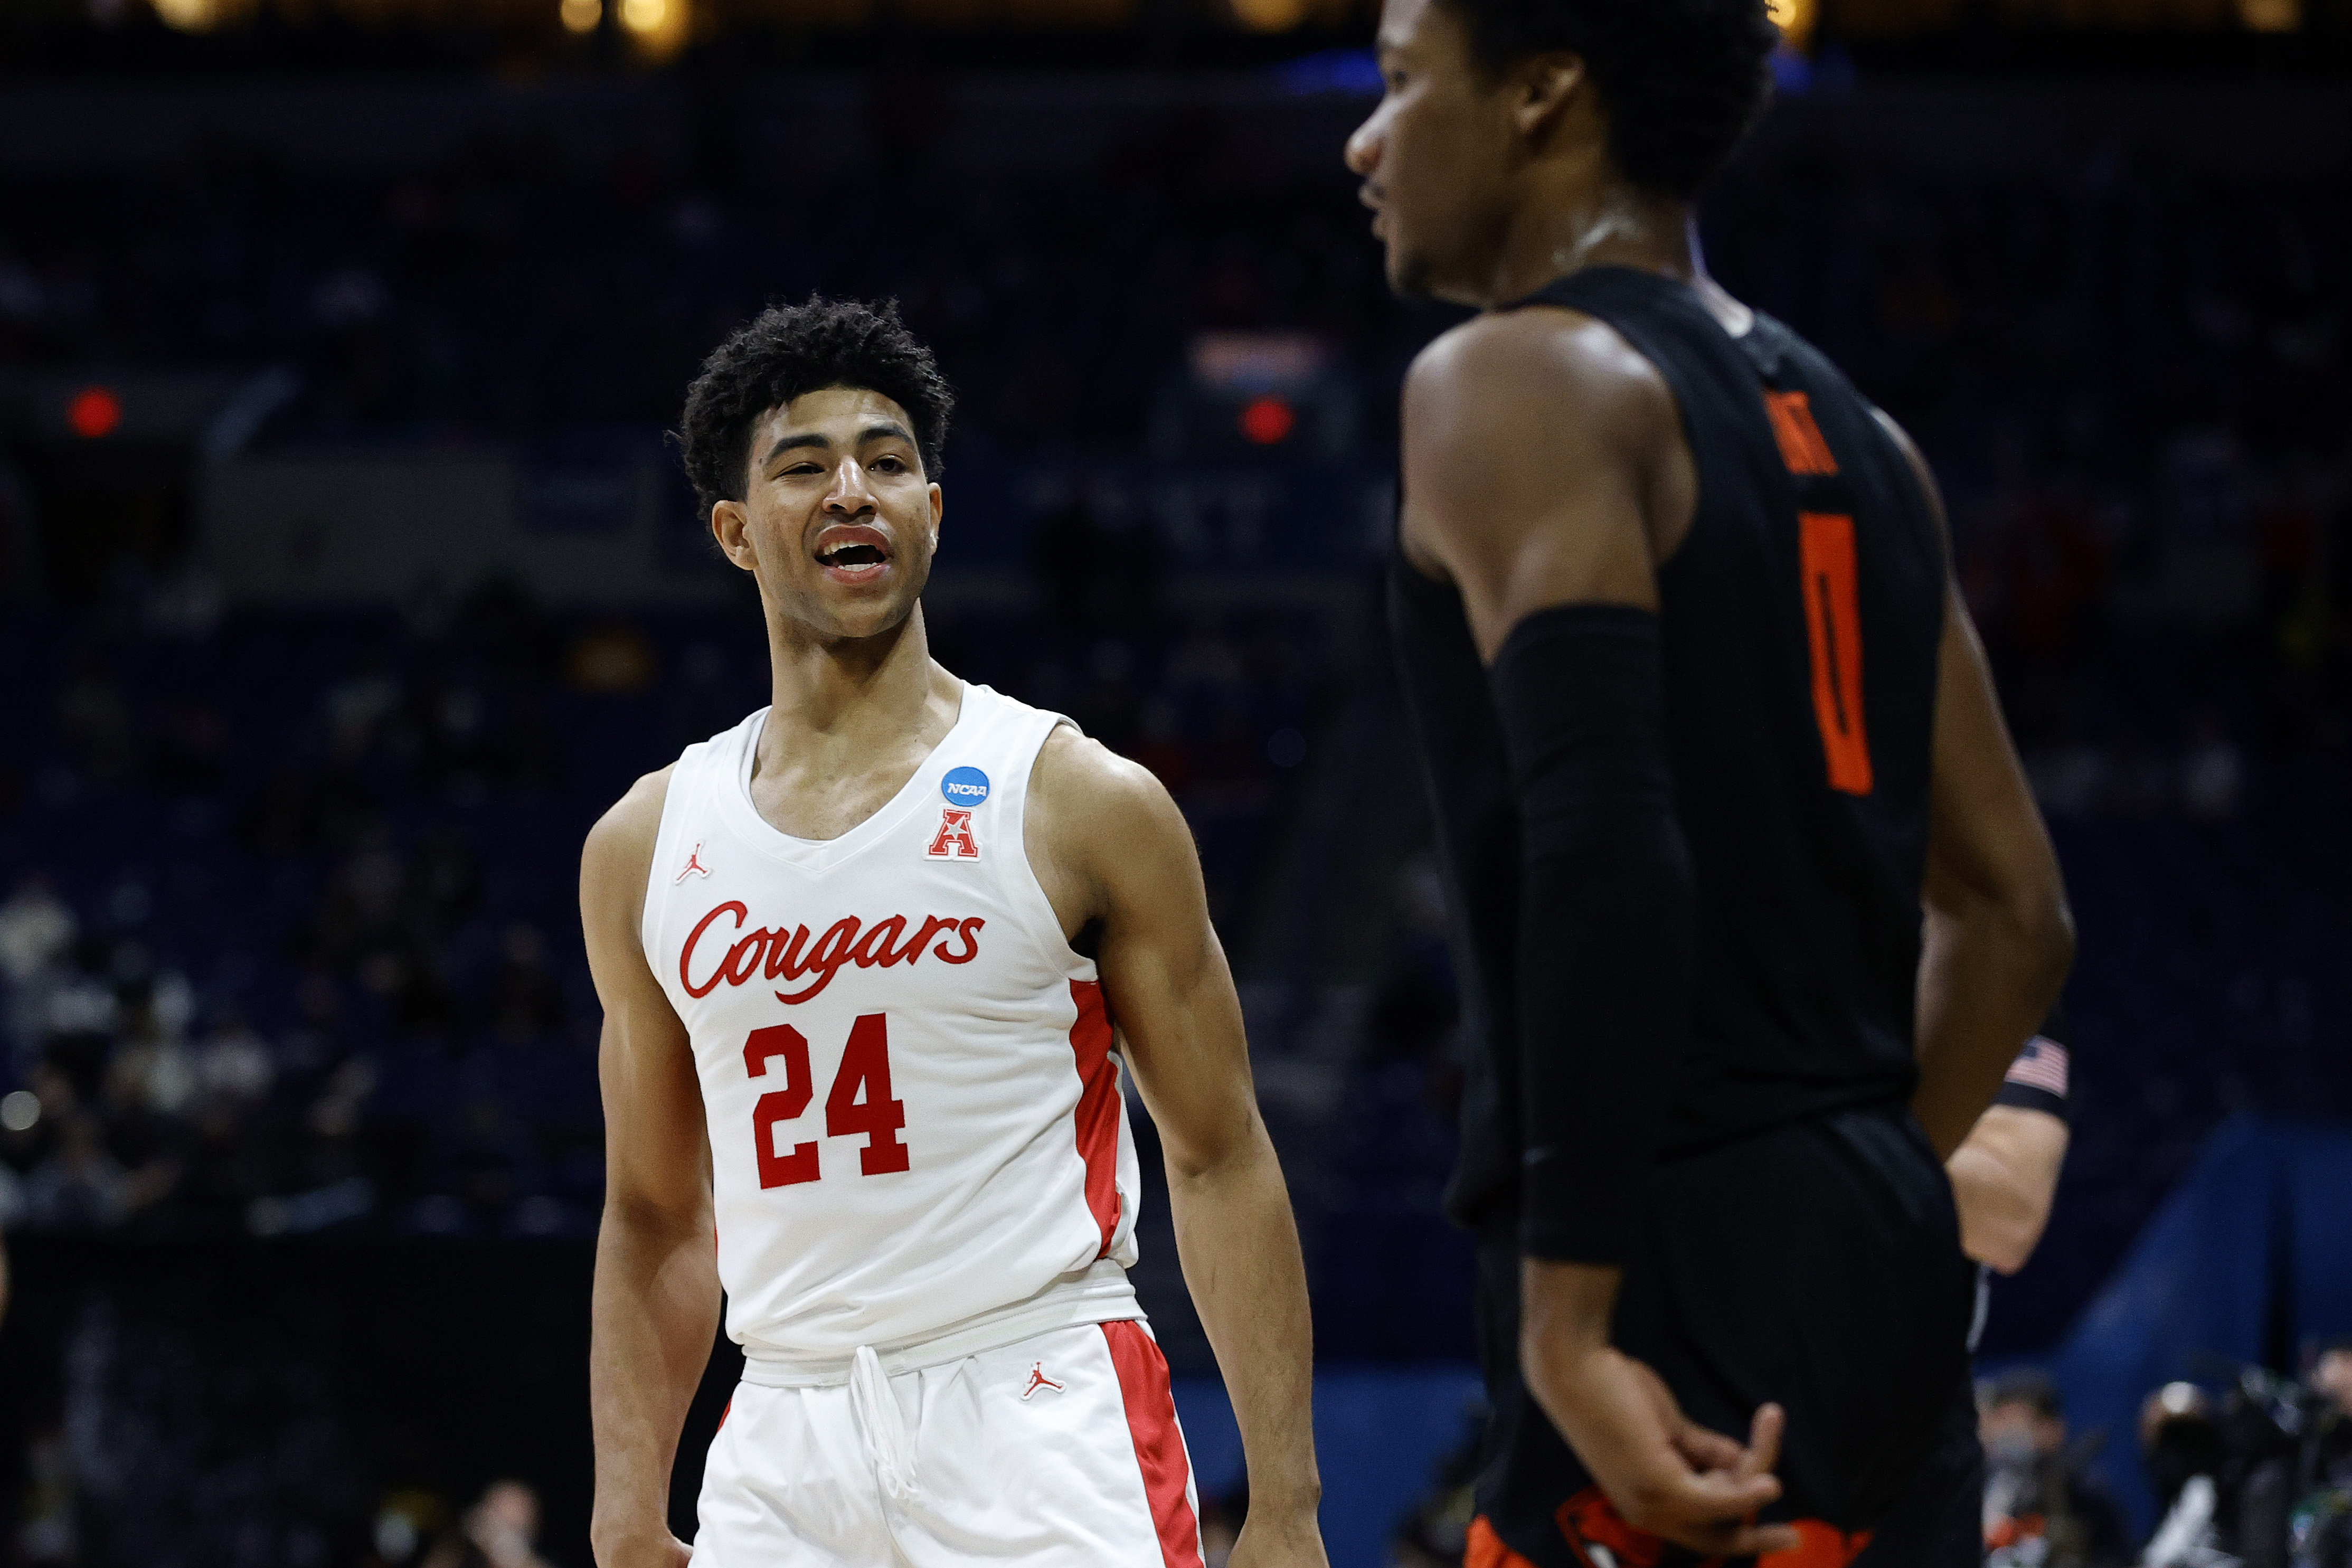 Quentin Grimes of the Houston Cougars speaks to Gianni Hunt of the Oregon State Beavers after making a three point basket during the second half in the Elite Eight round of the 2021 NCAA Men's Basketball Tournament at Lucas Oil Stadium on March 29, 2021 in Indianapolis, Indiana.